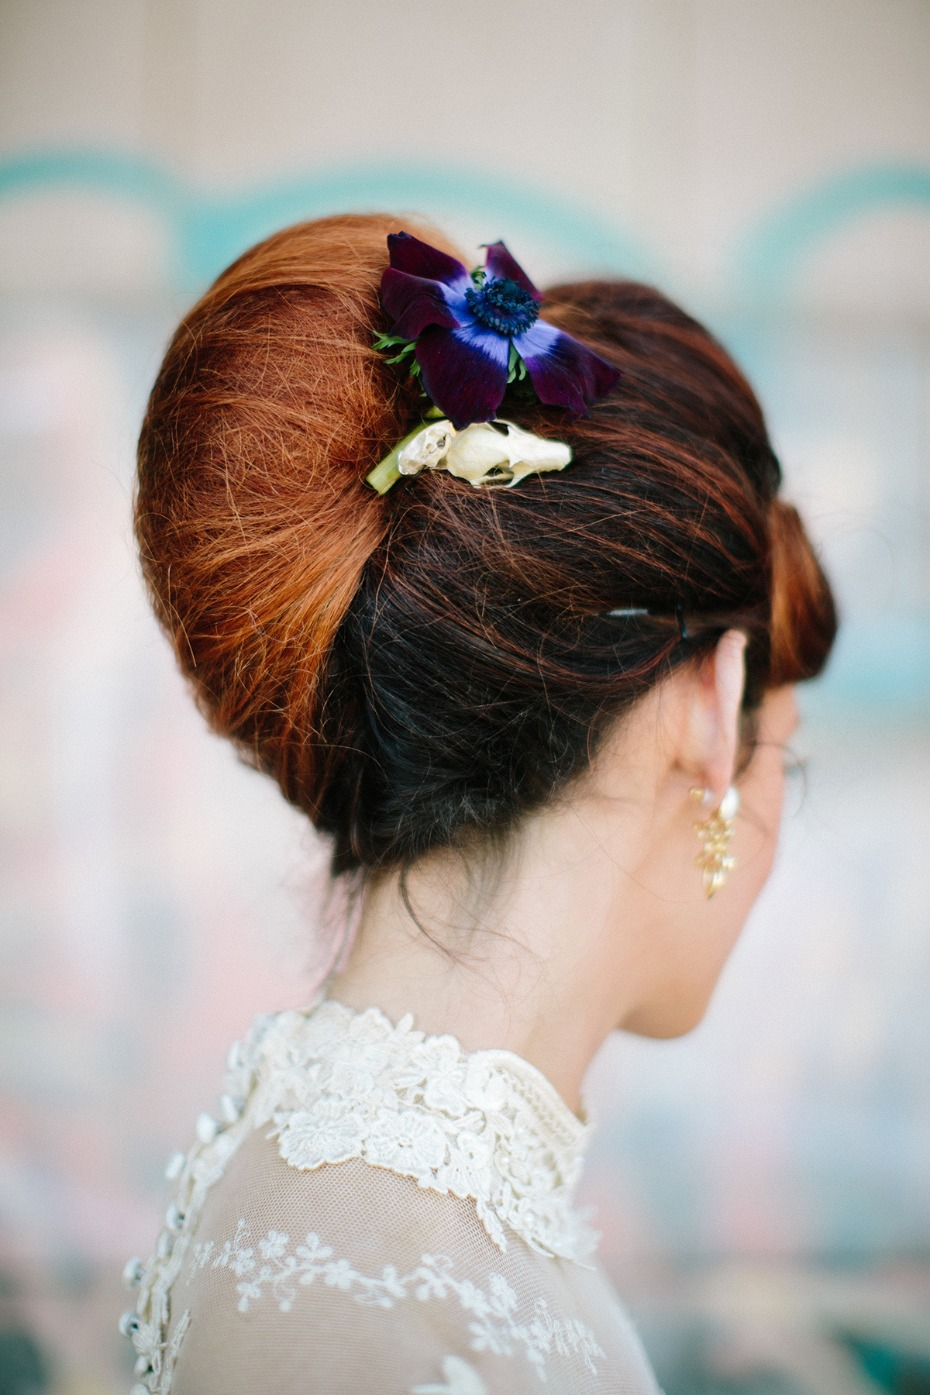 Skull and flower hair accessory for the bride